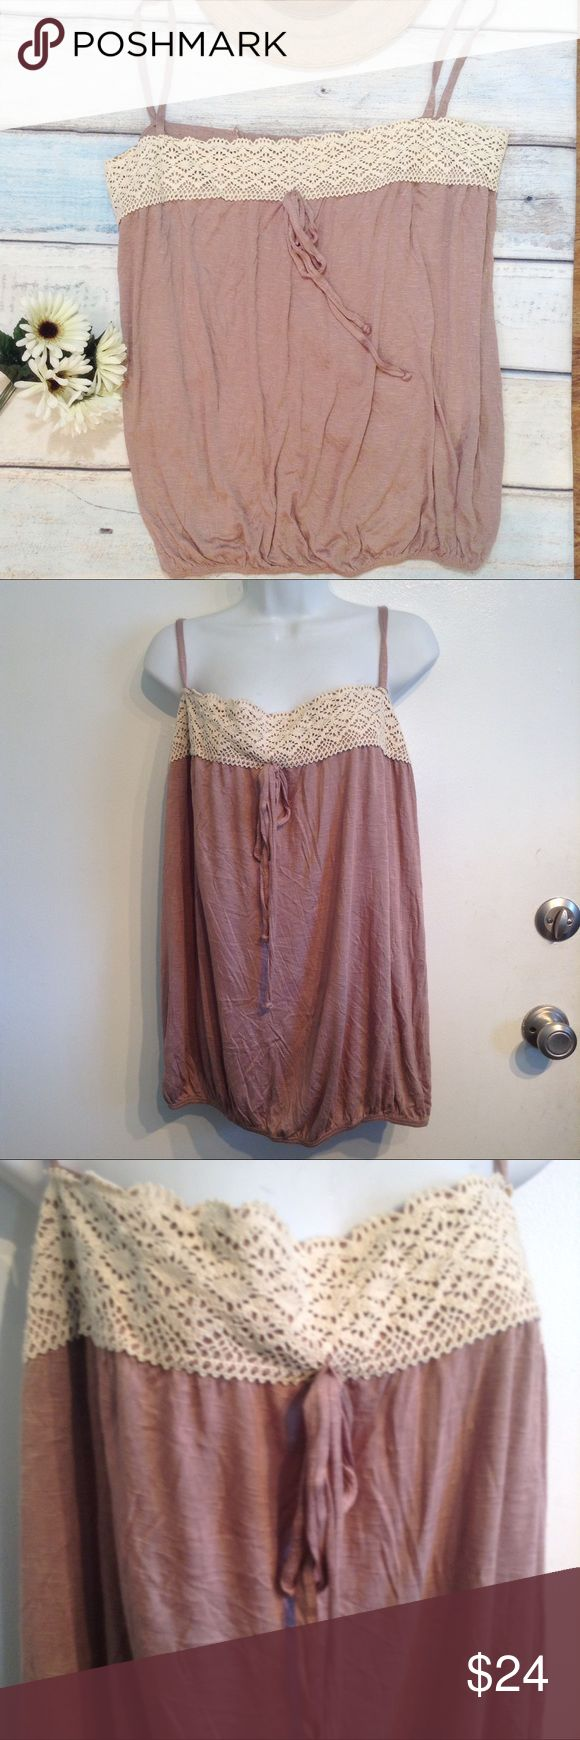 🍂5for$25🍂NWT PLUS SIZE Neutral Crochet Tank Top New with tag, though tag has been ripped in half. Plus soze neutral brown tank top with cream crochet trim. Smocked elastic in back for a comfortable and flattering fit. Size 2xl. No modeling. Smoke free home. I do discount bundles. Caren Sport Tops Tank Tops